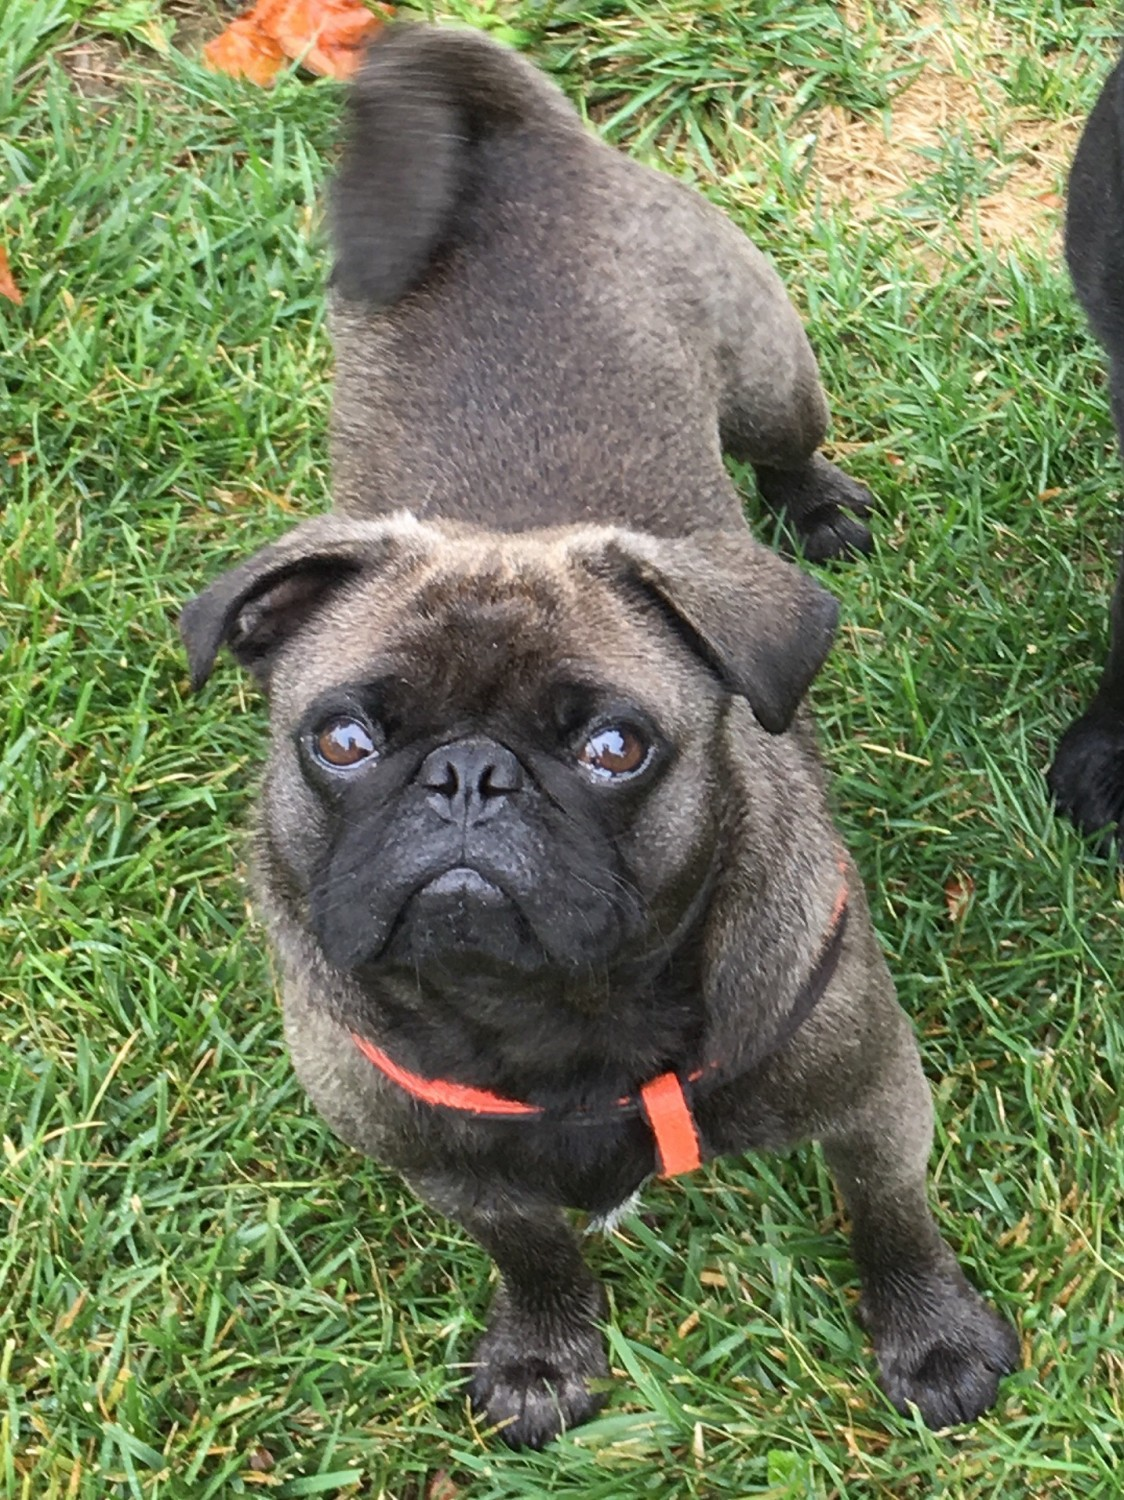 Pug Puppies for Sale - In Netherlands